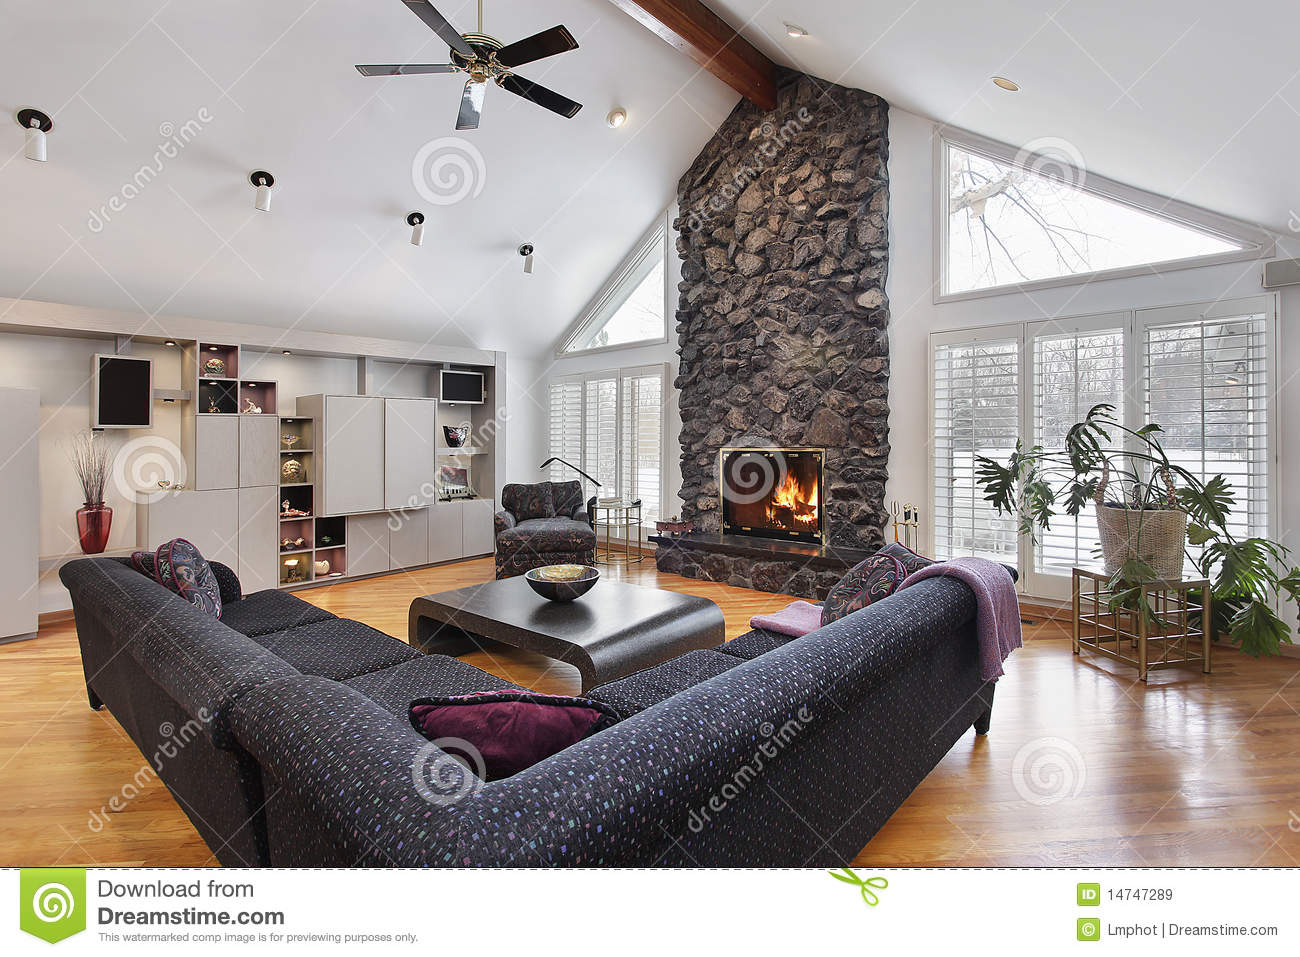 Kaminumrandung Stein Family Room With Two Story Stone Fireplace Stock Image